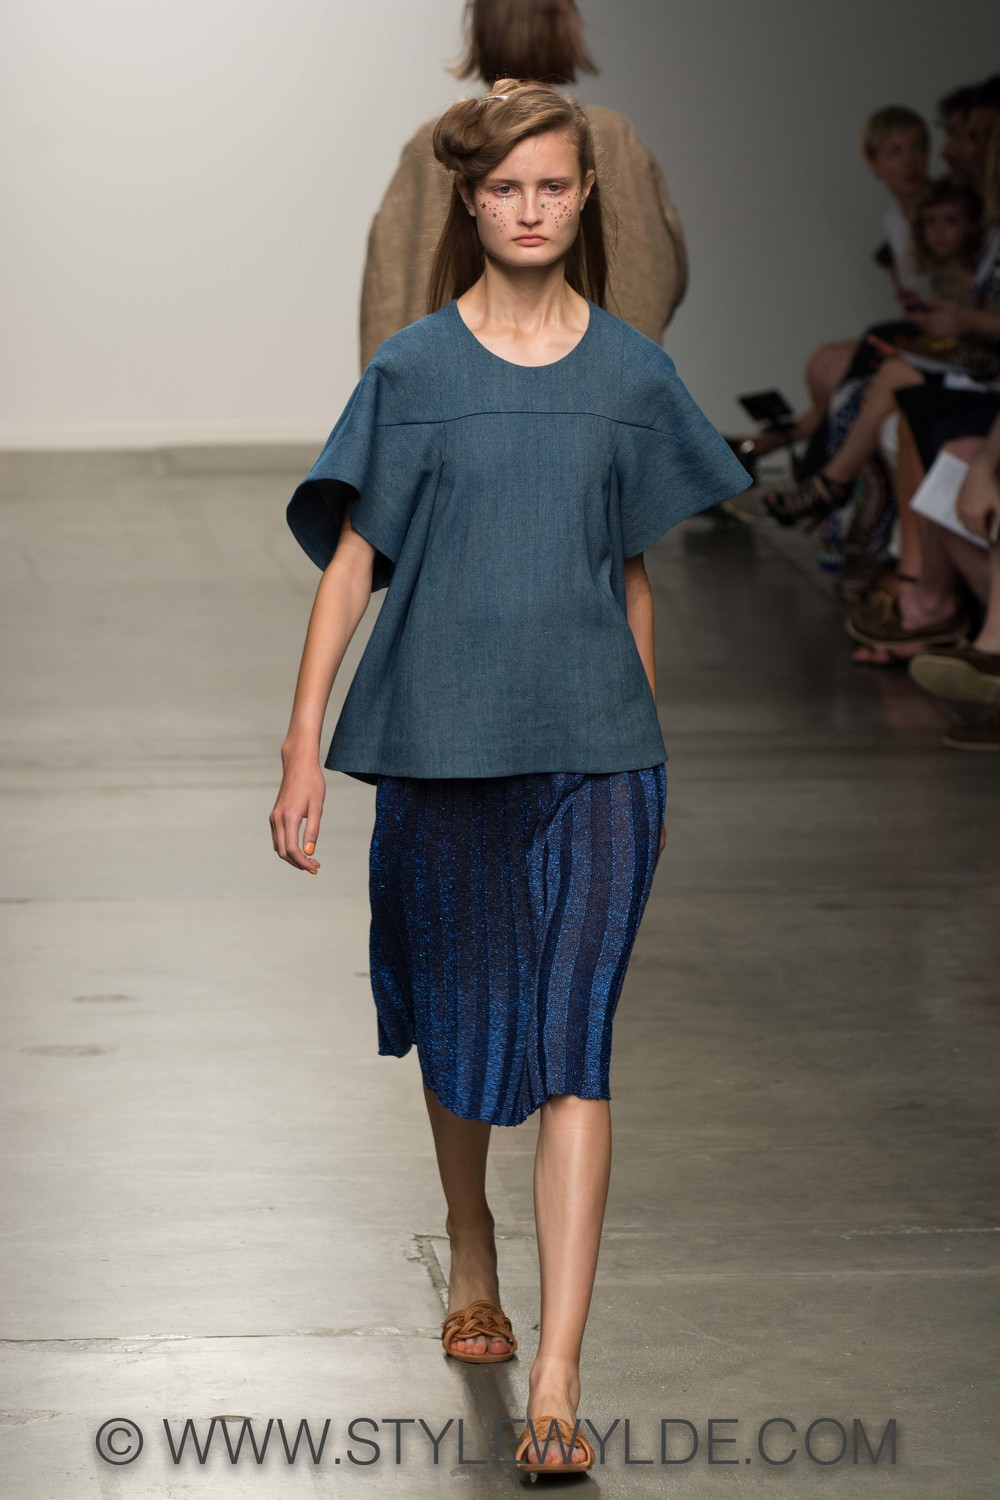 StyleWylde_adetacher_FOH_SS15_sw (4 of 37).jpg